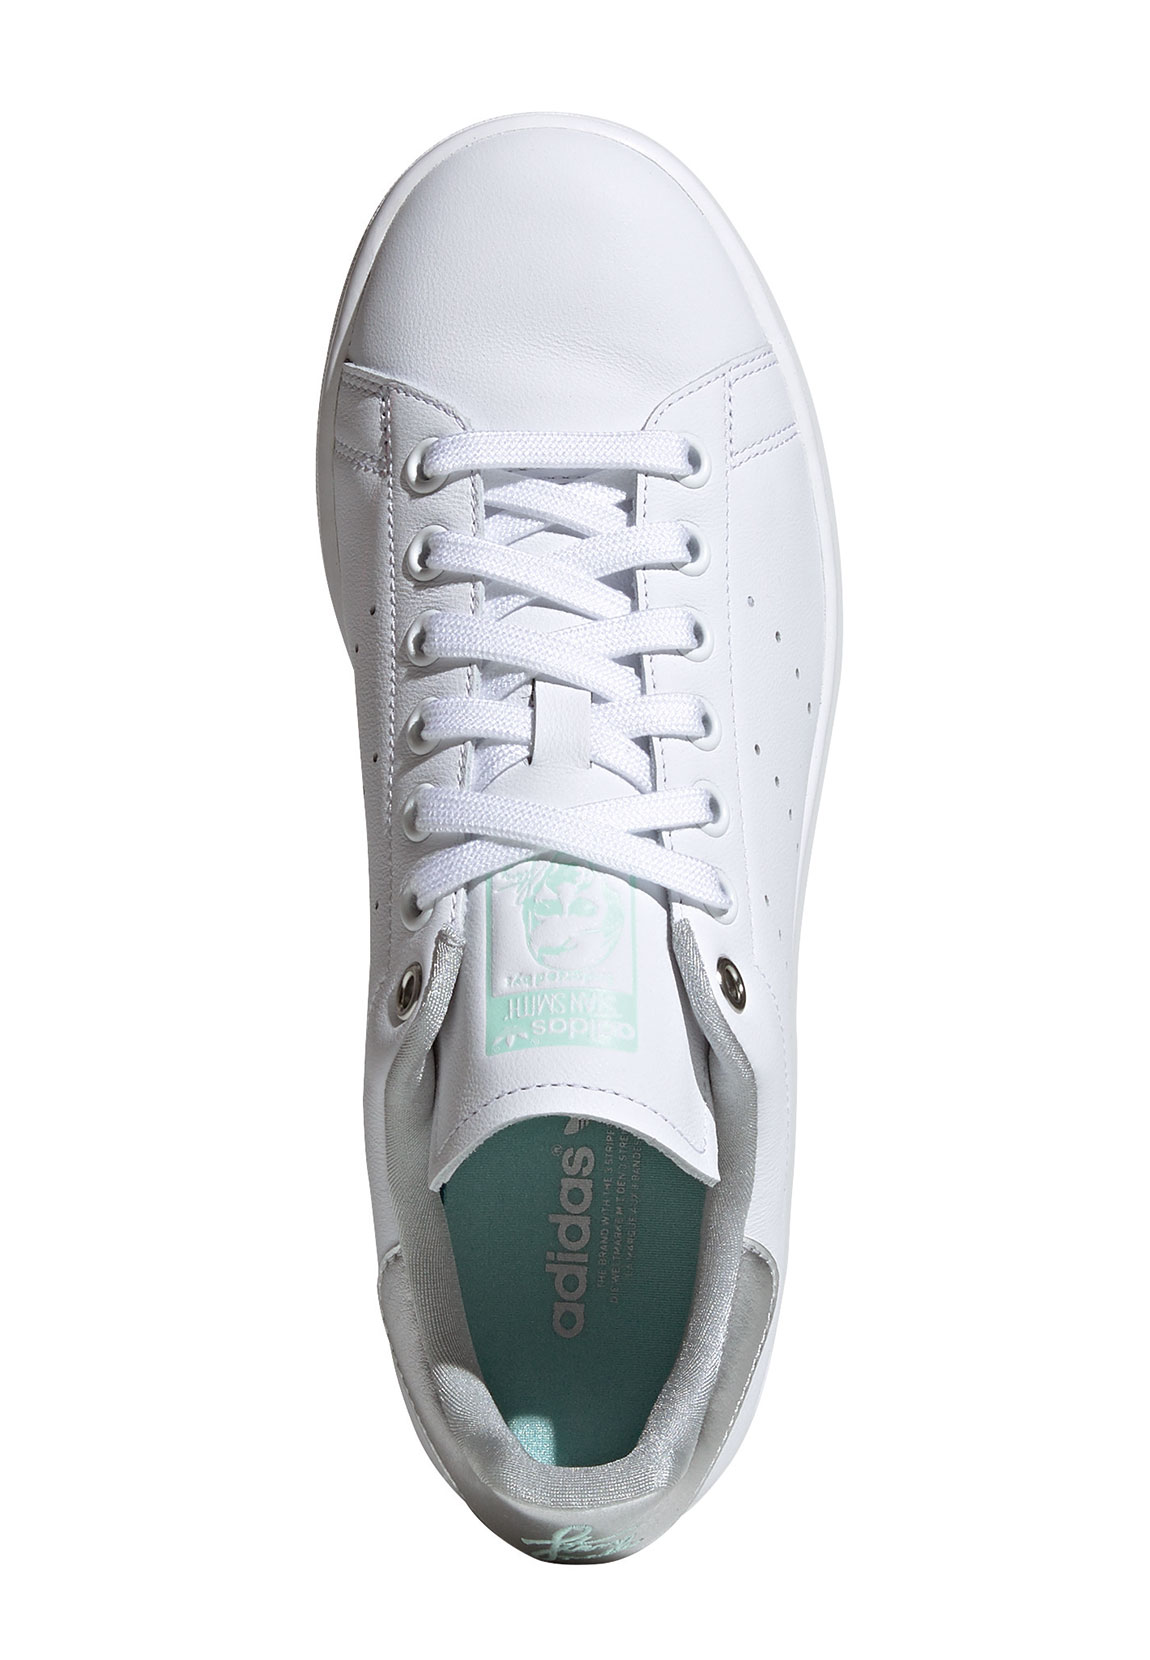 Details about Adidas Originals Trainers Stan Smith W G27907 White Silver